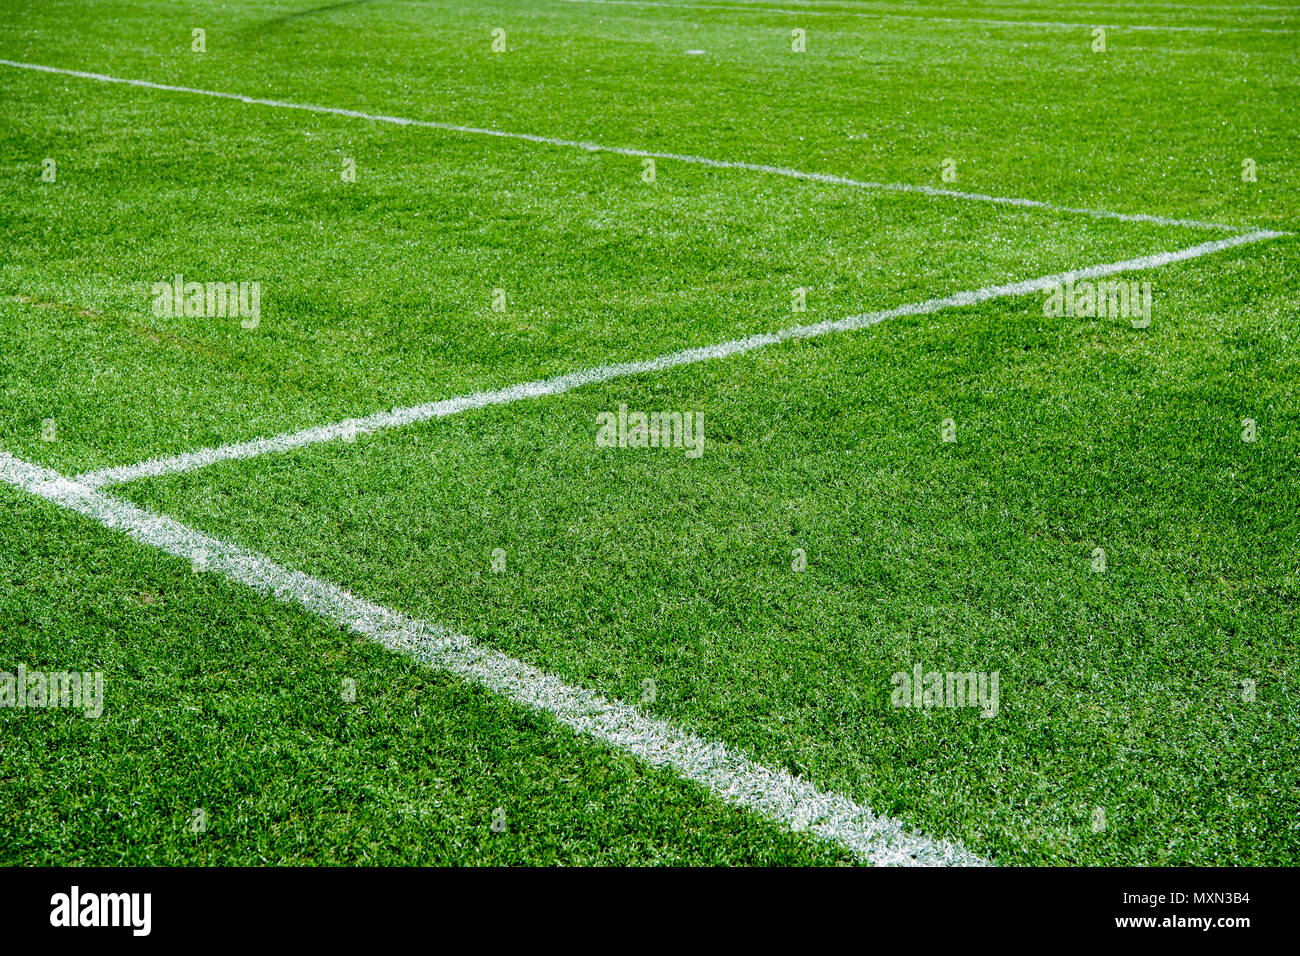 White lines on green grass of a soccer field. Selective focus - Stock Image